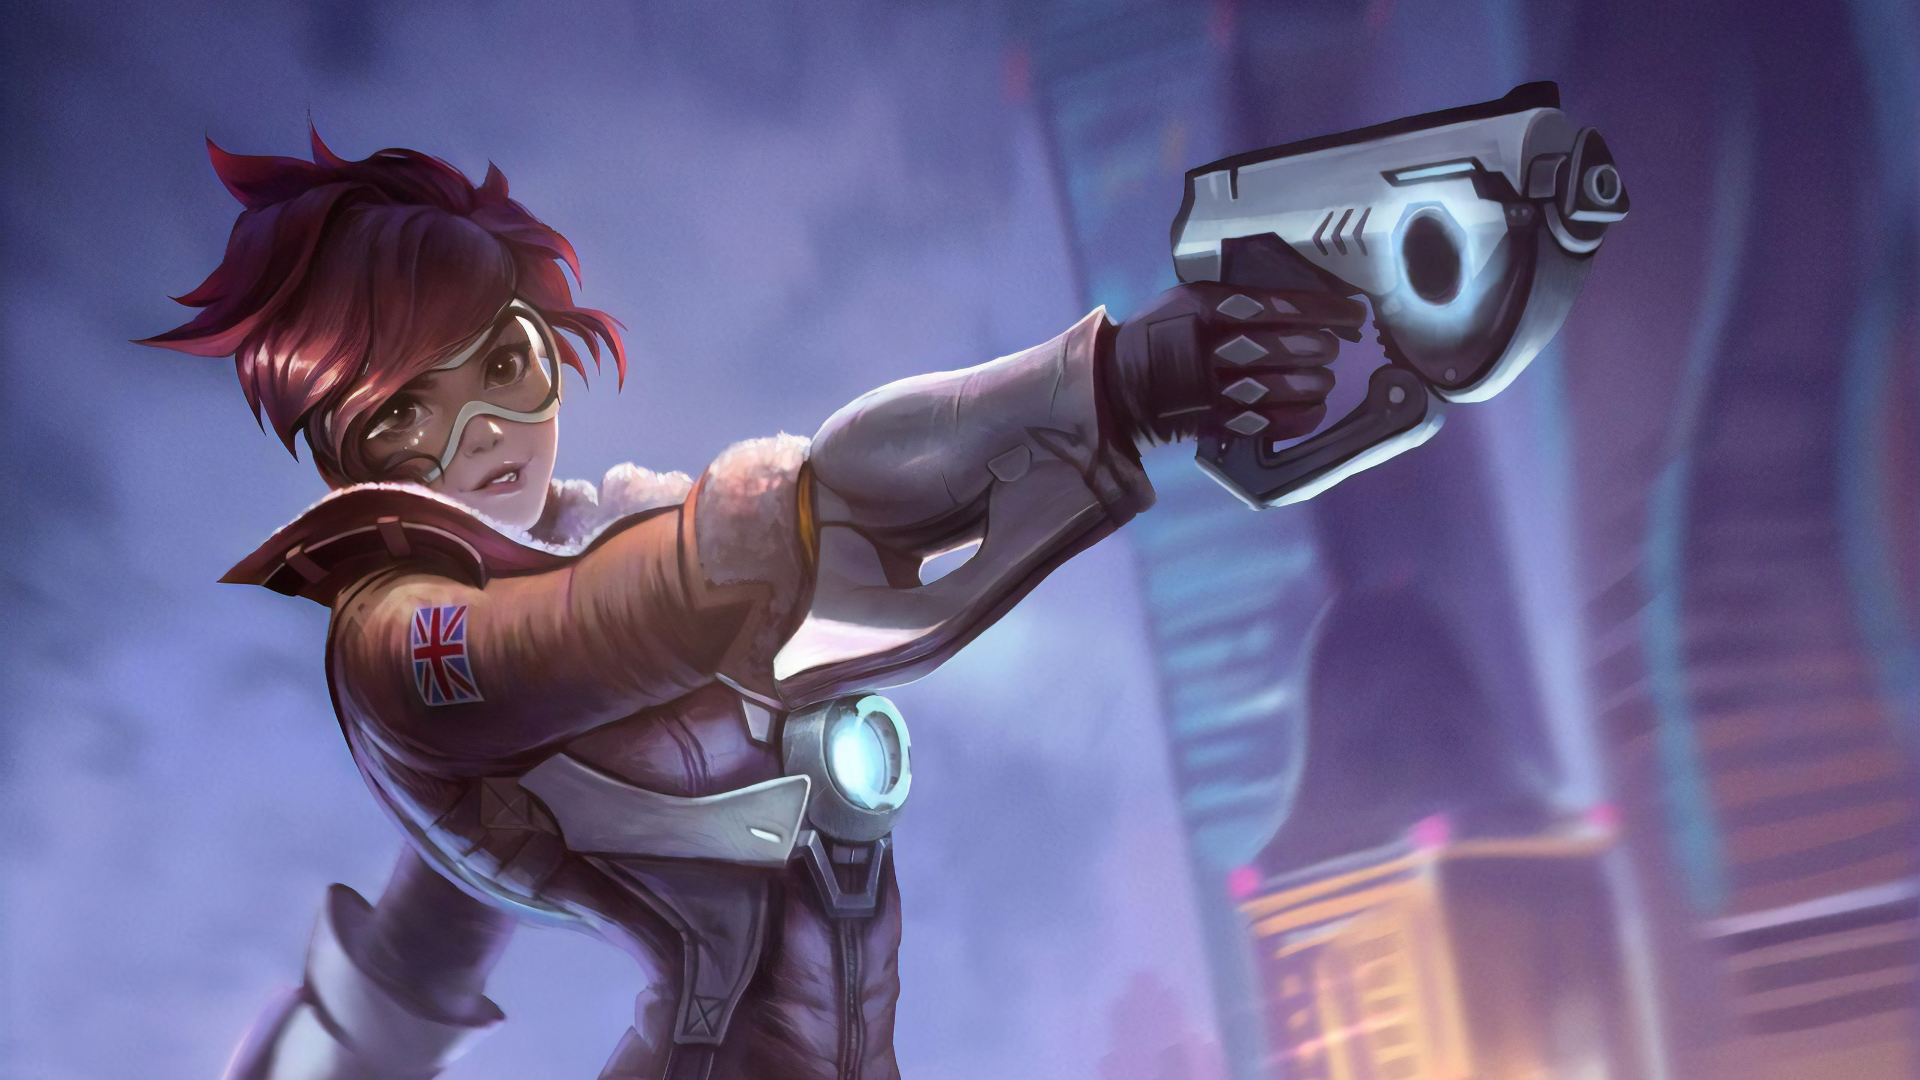 1920x1080 Tracer In Overwatch 1080p Laptop Full Hd Wallpaper